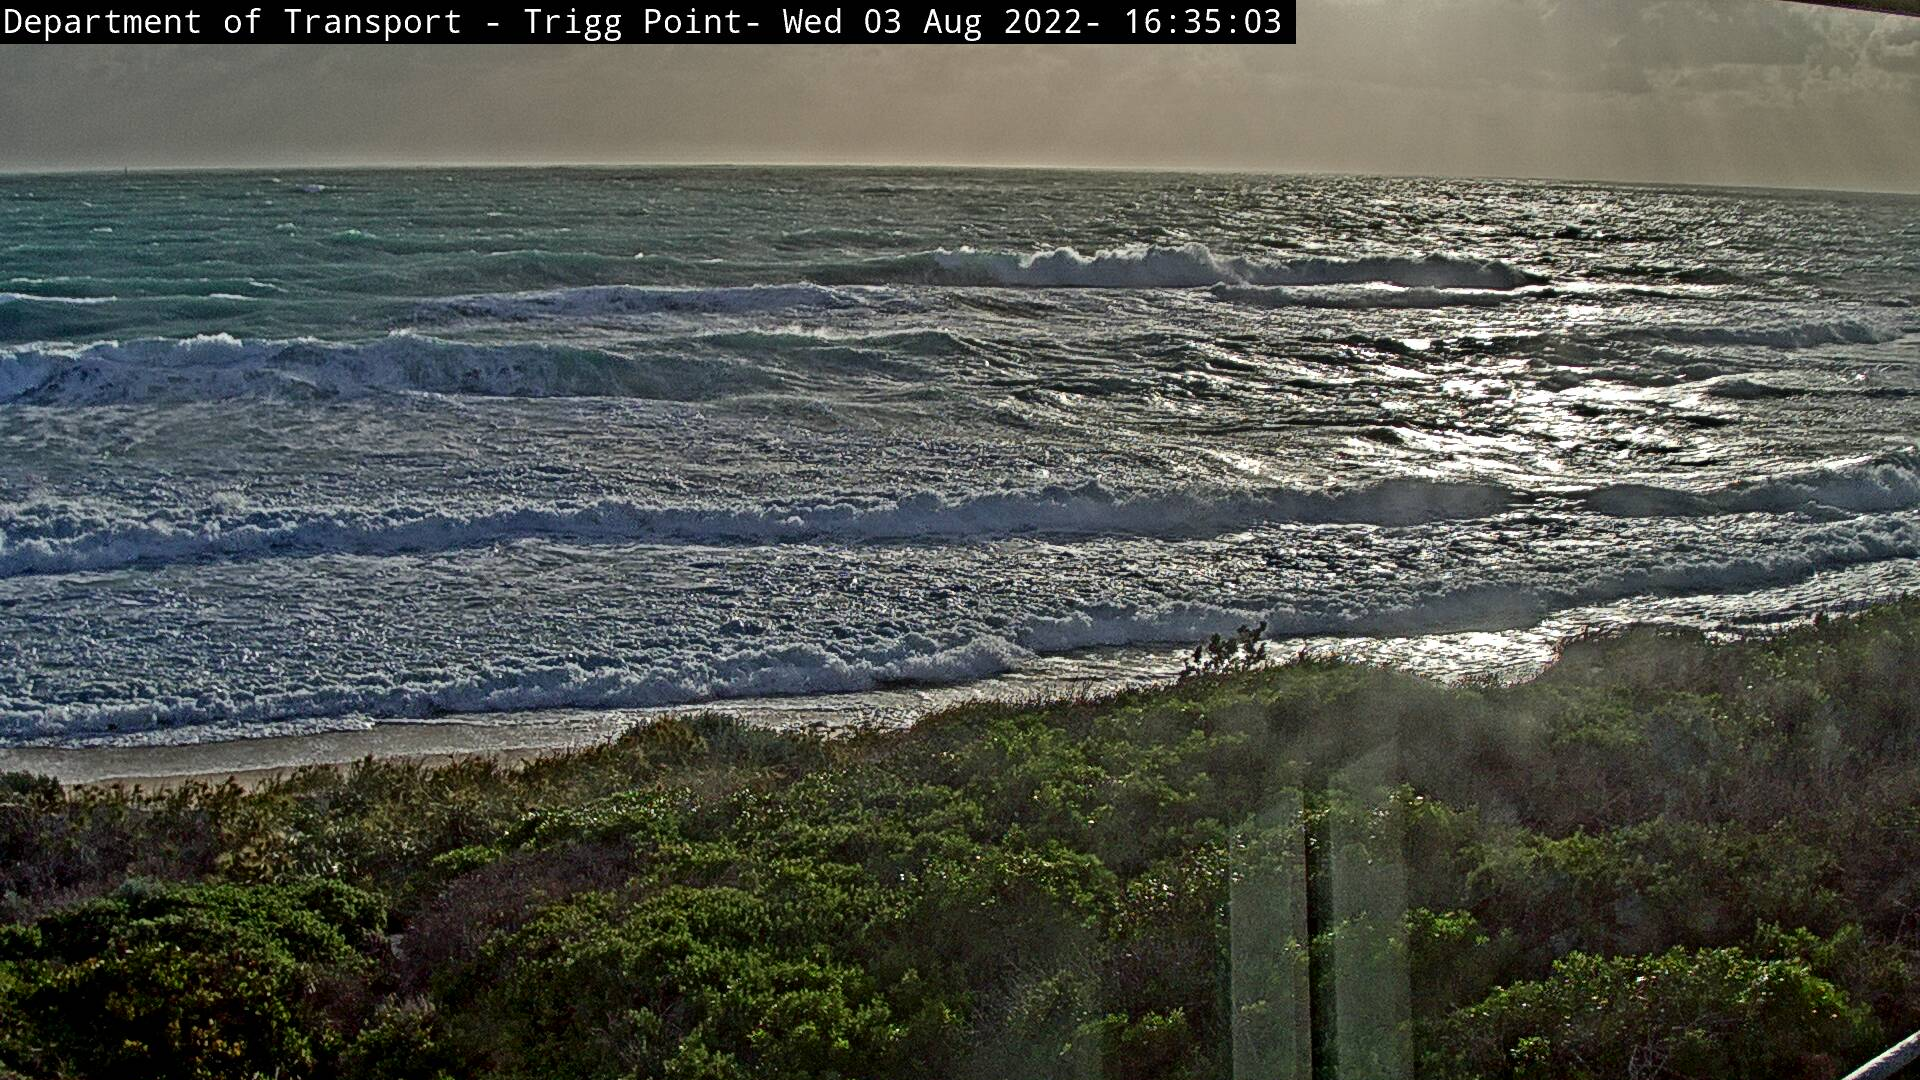 Perth webcam - Triggs Beach webcam, Western Australia, Perth